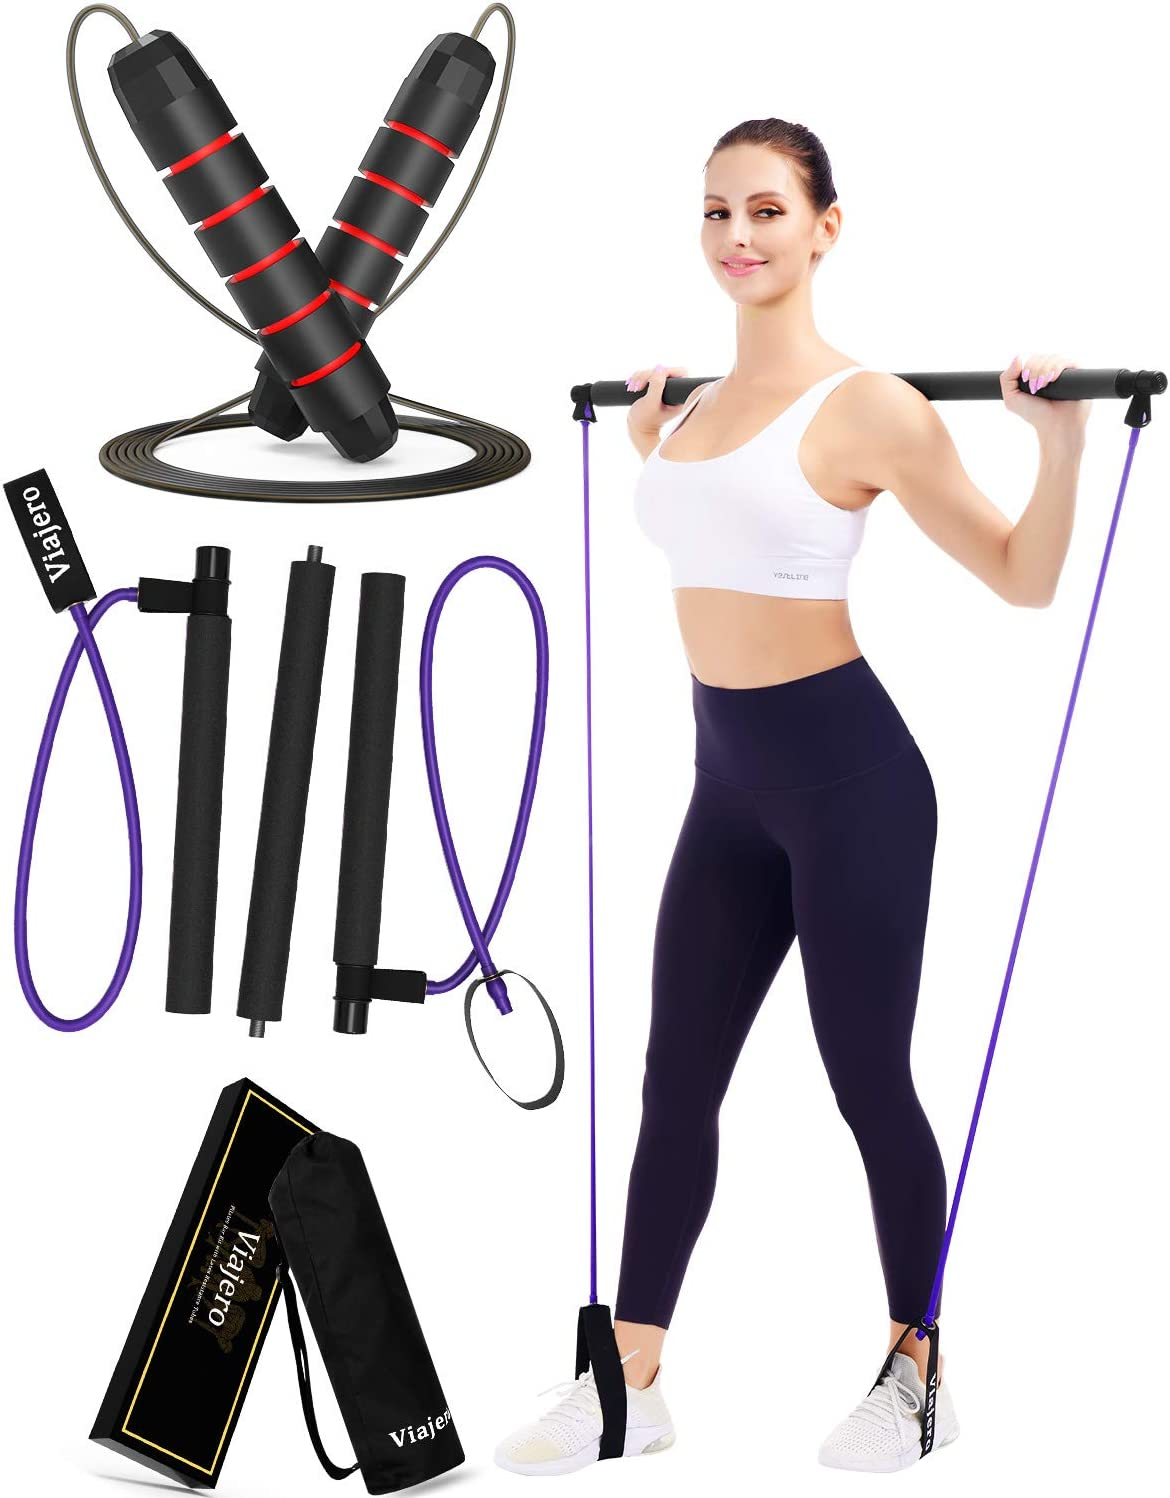 Viajero Pilates Bar Jump Rope, 2020 Upgraded 3-Section Pilates Bar Kit with 2 Powerful Latex Resistance Bands, All-in-one Home Gym Workout Equipment for Women and Men, Crossfit Fitness